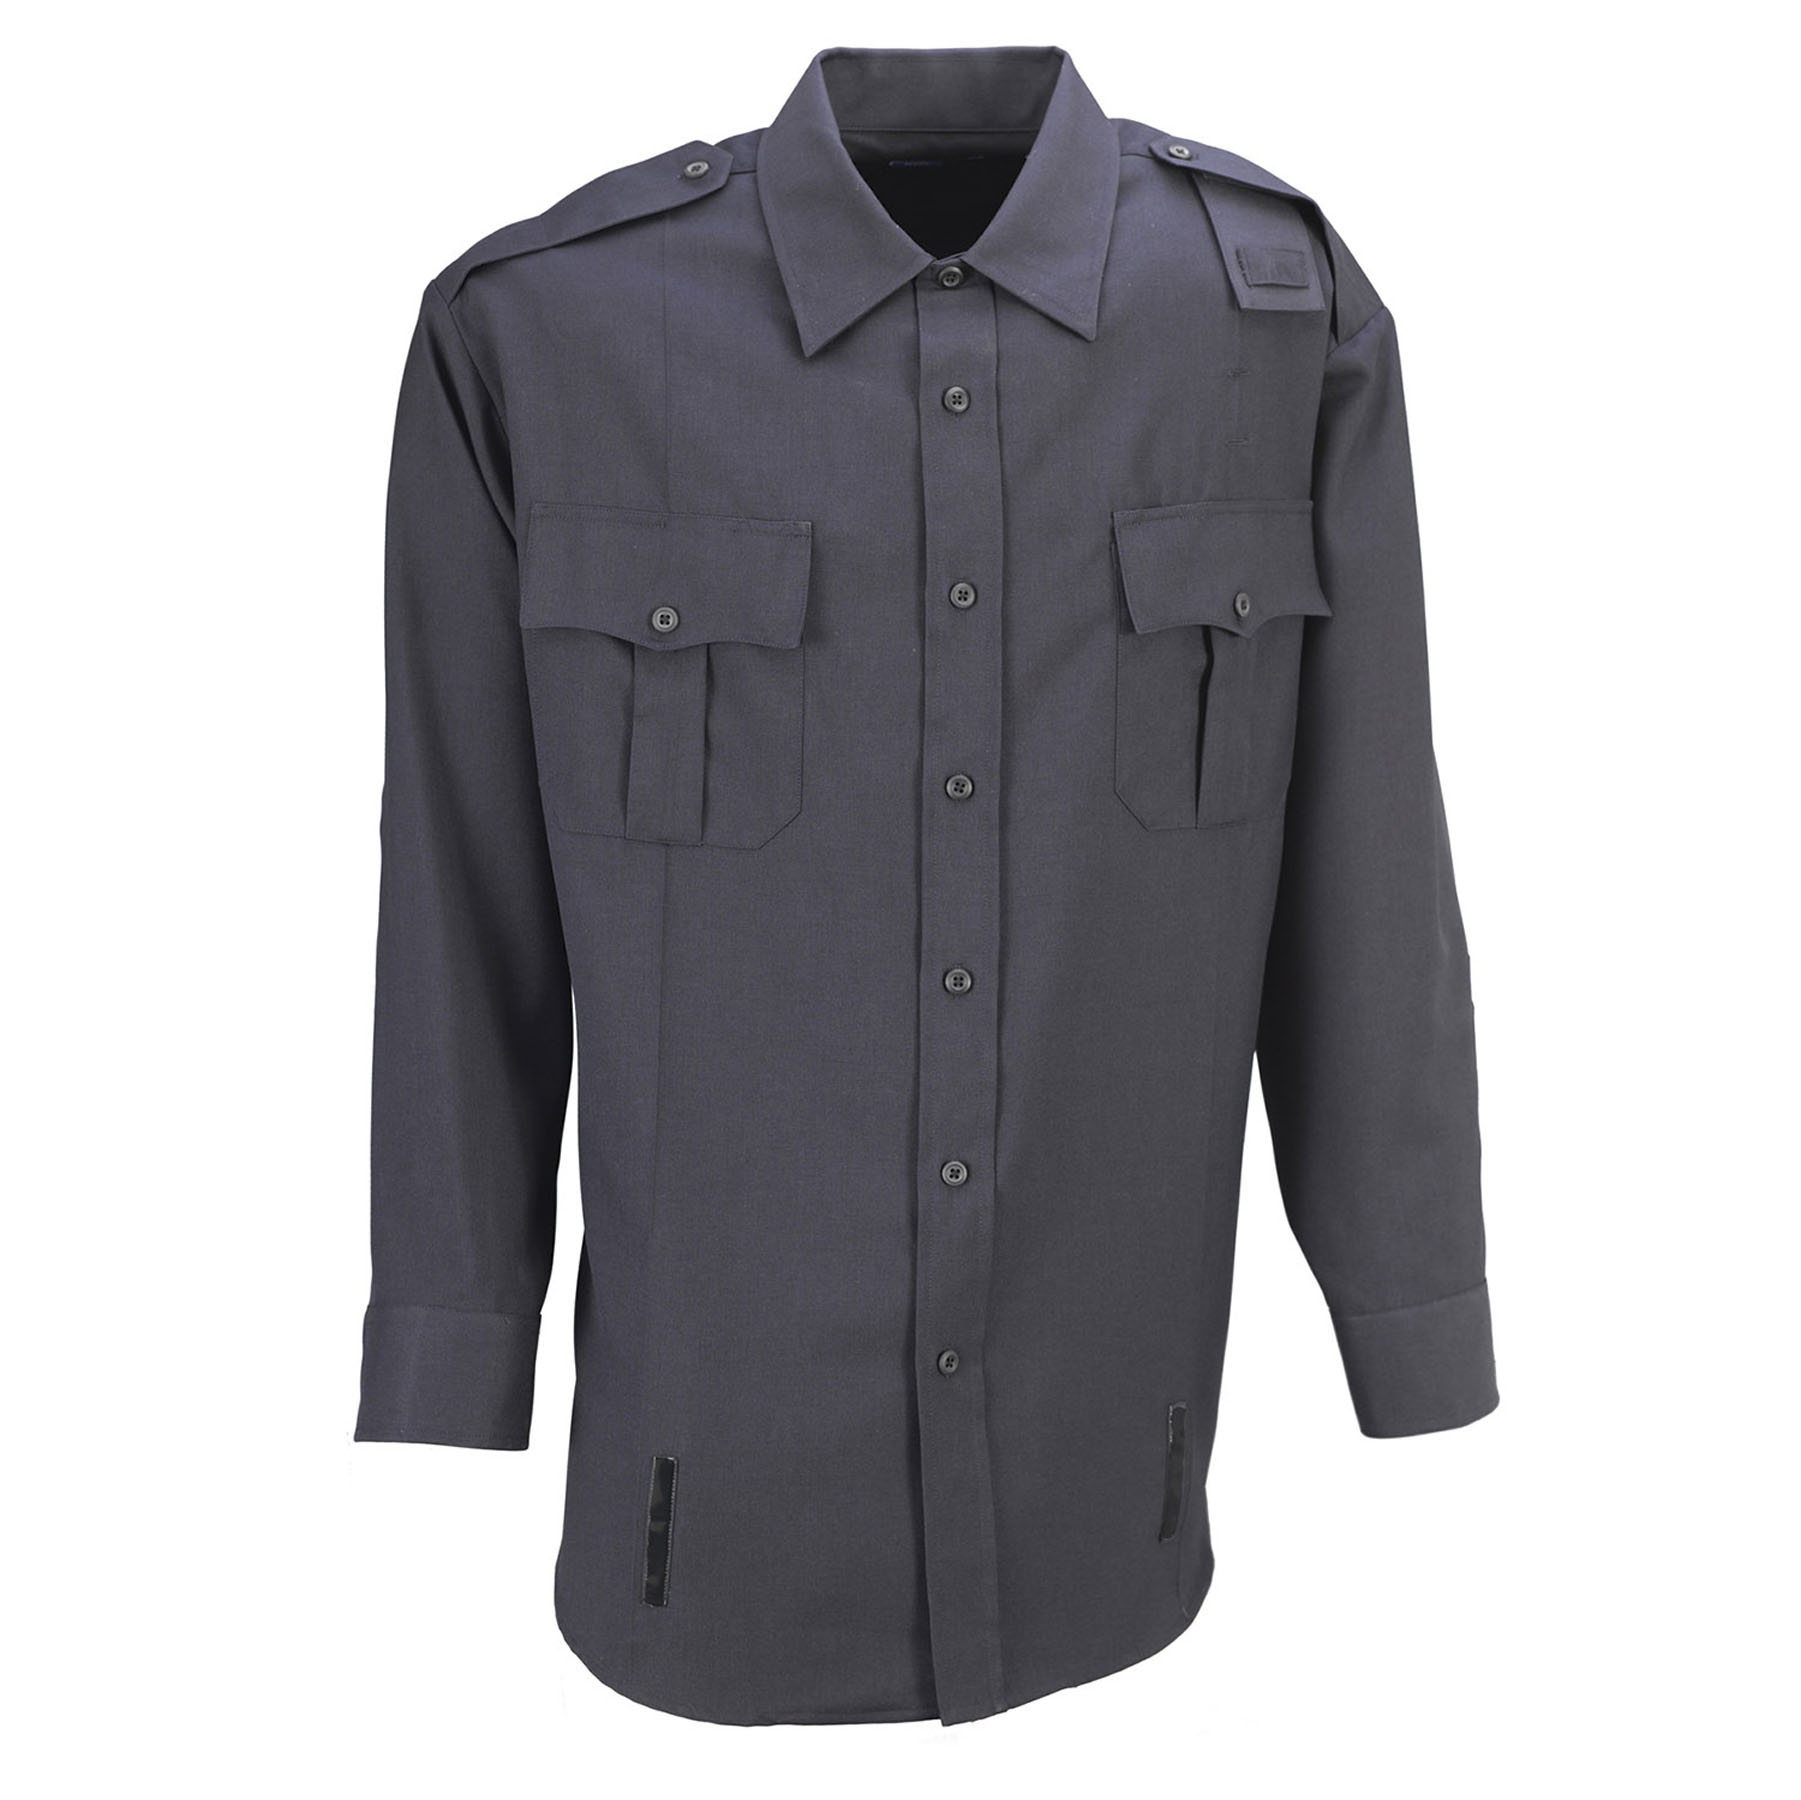 Spiewak Professional Polyester Long Sleeve Shirt